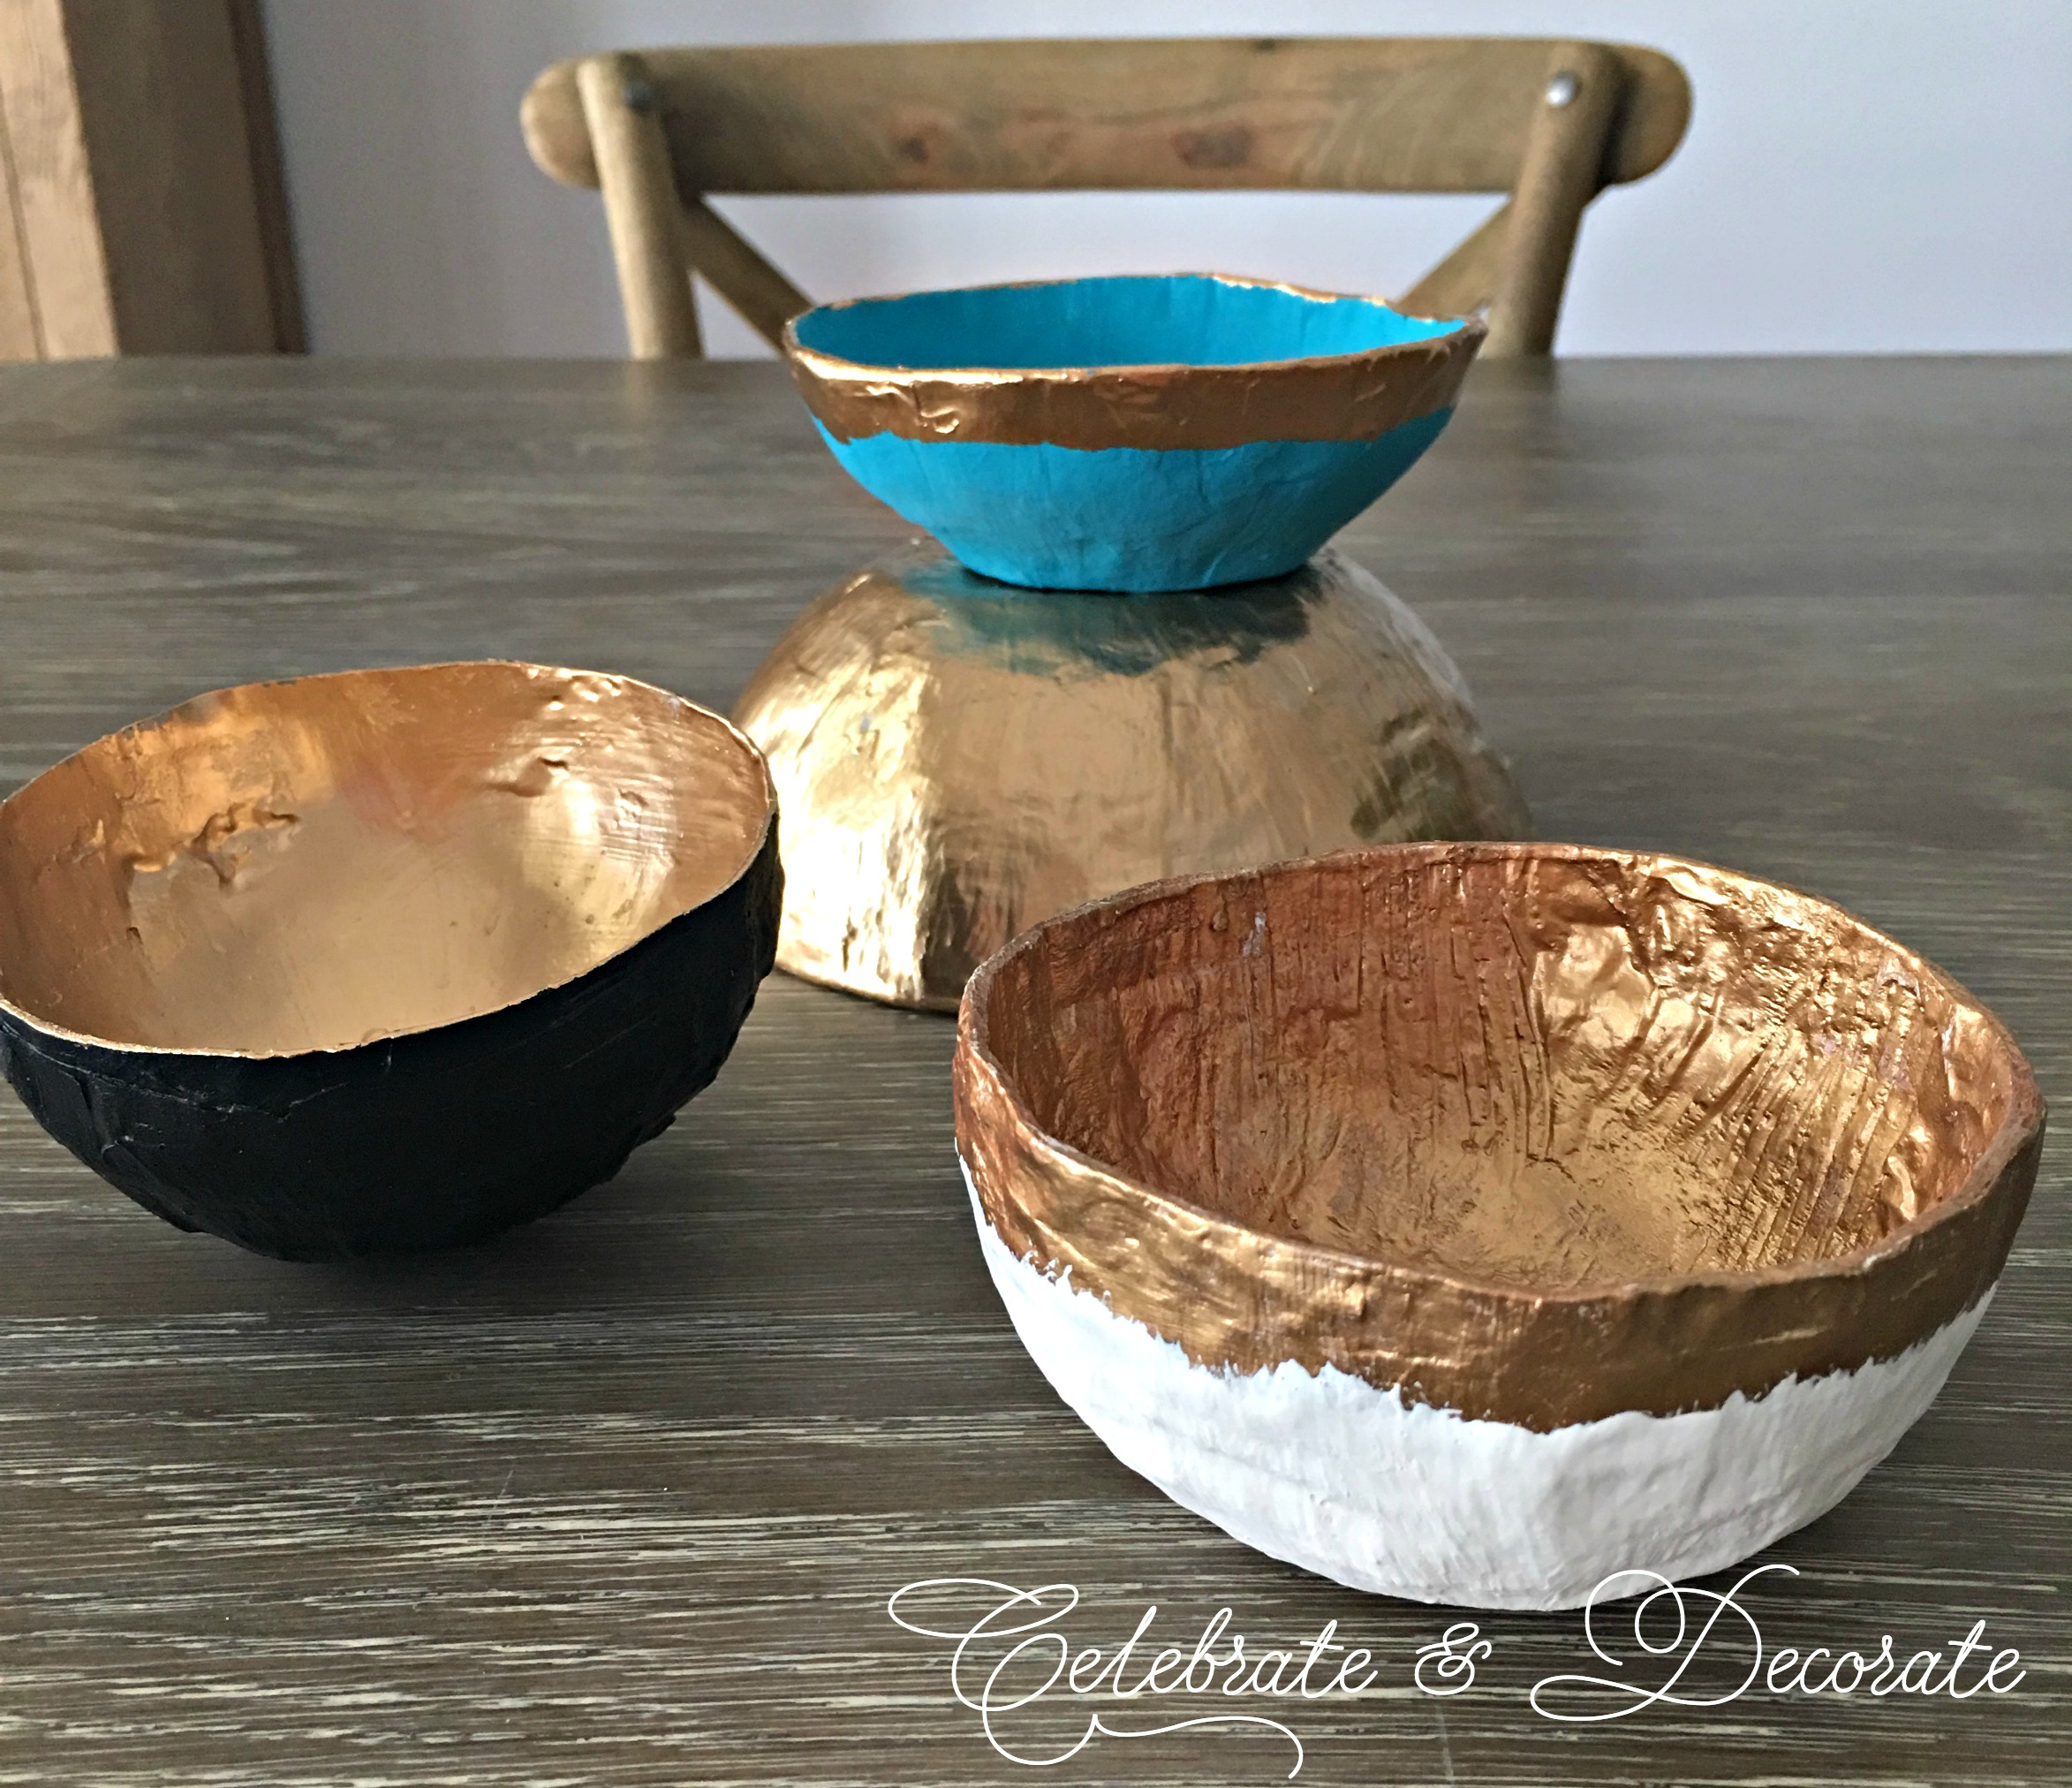 & DIY Paper Mache Bowl - Celebrate \u0026 Decorate